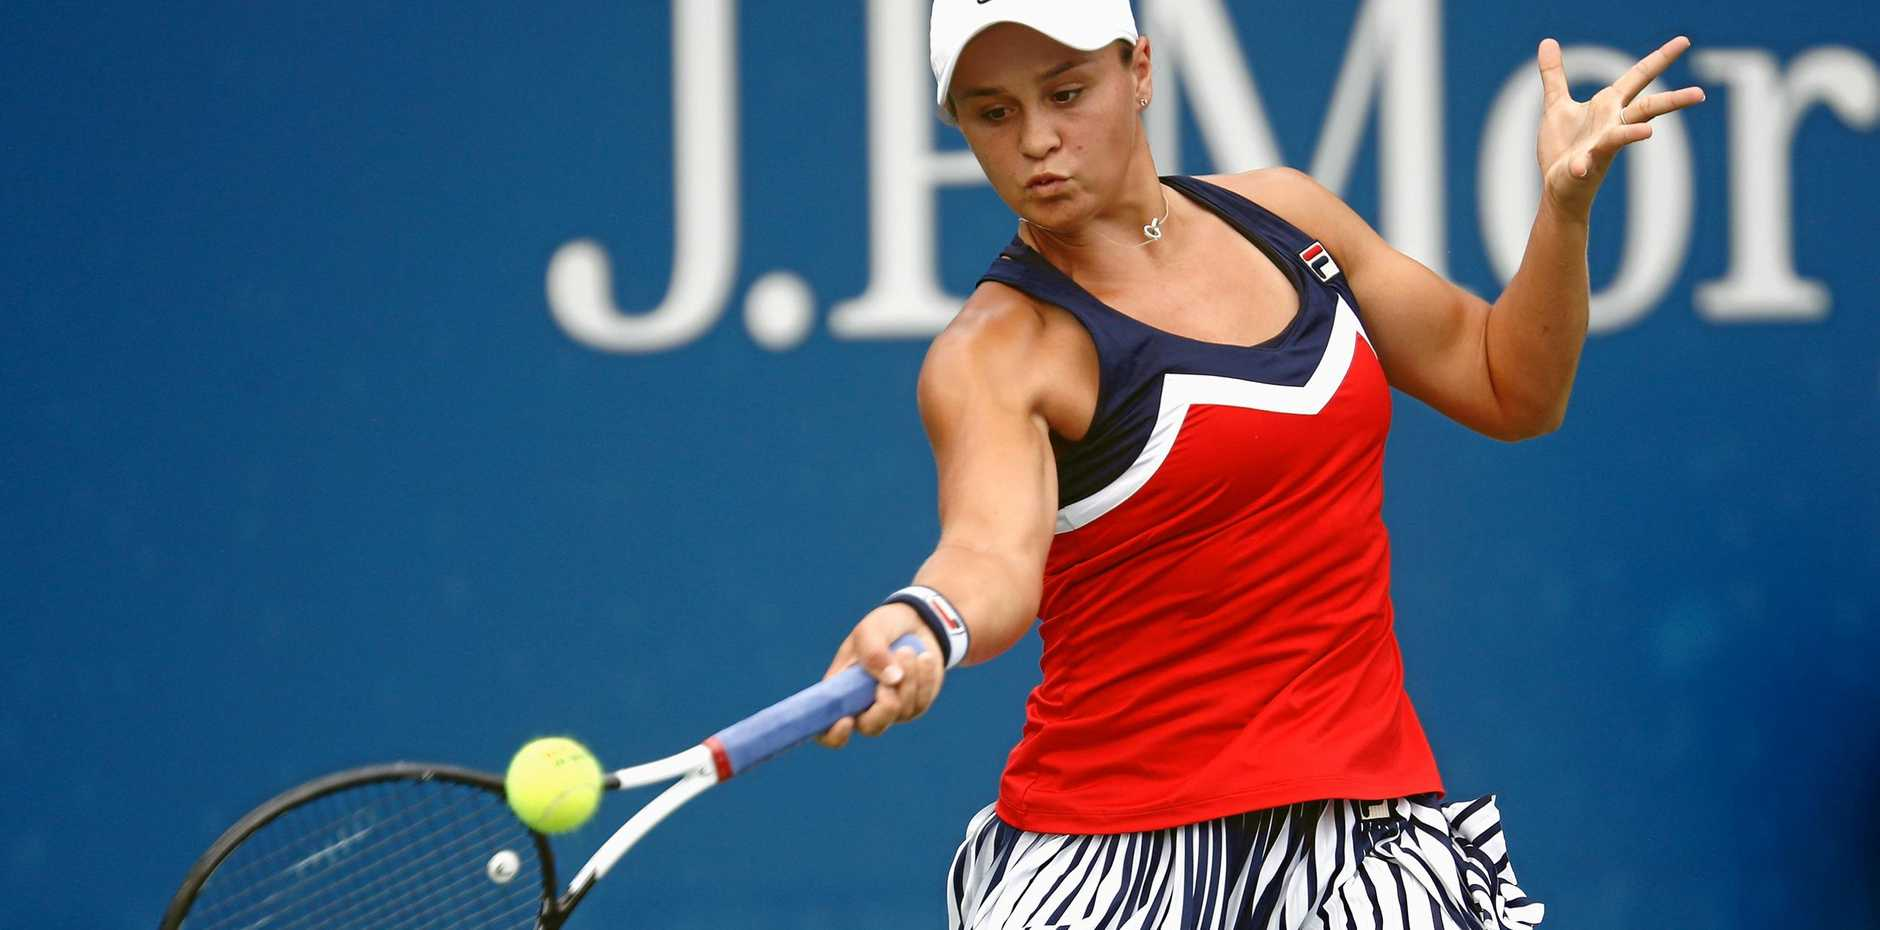 Australia's Ashleigh Barty has comfortably beaten former French Open finalist Lucie Safarova in their round-two clash at the US Open. Picture: Julian Finney/Getty